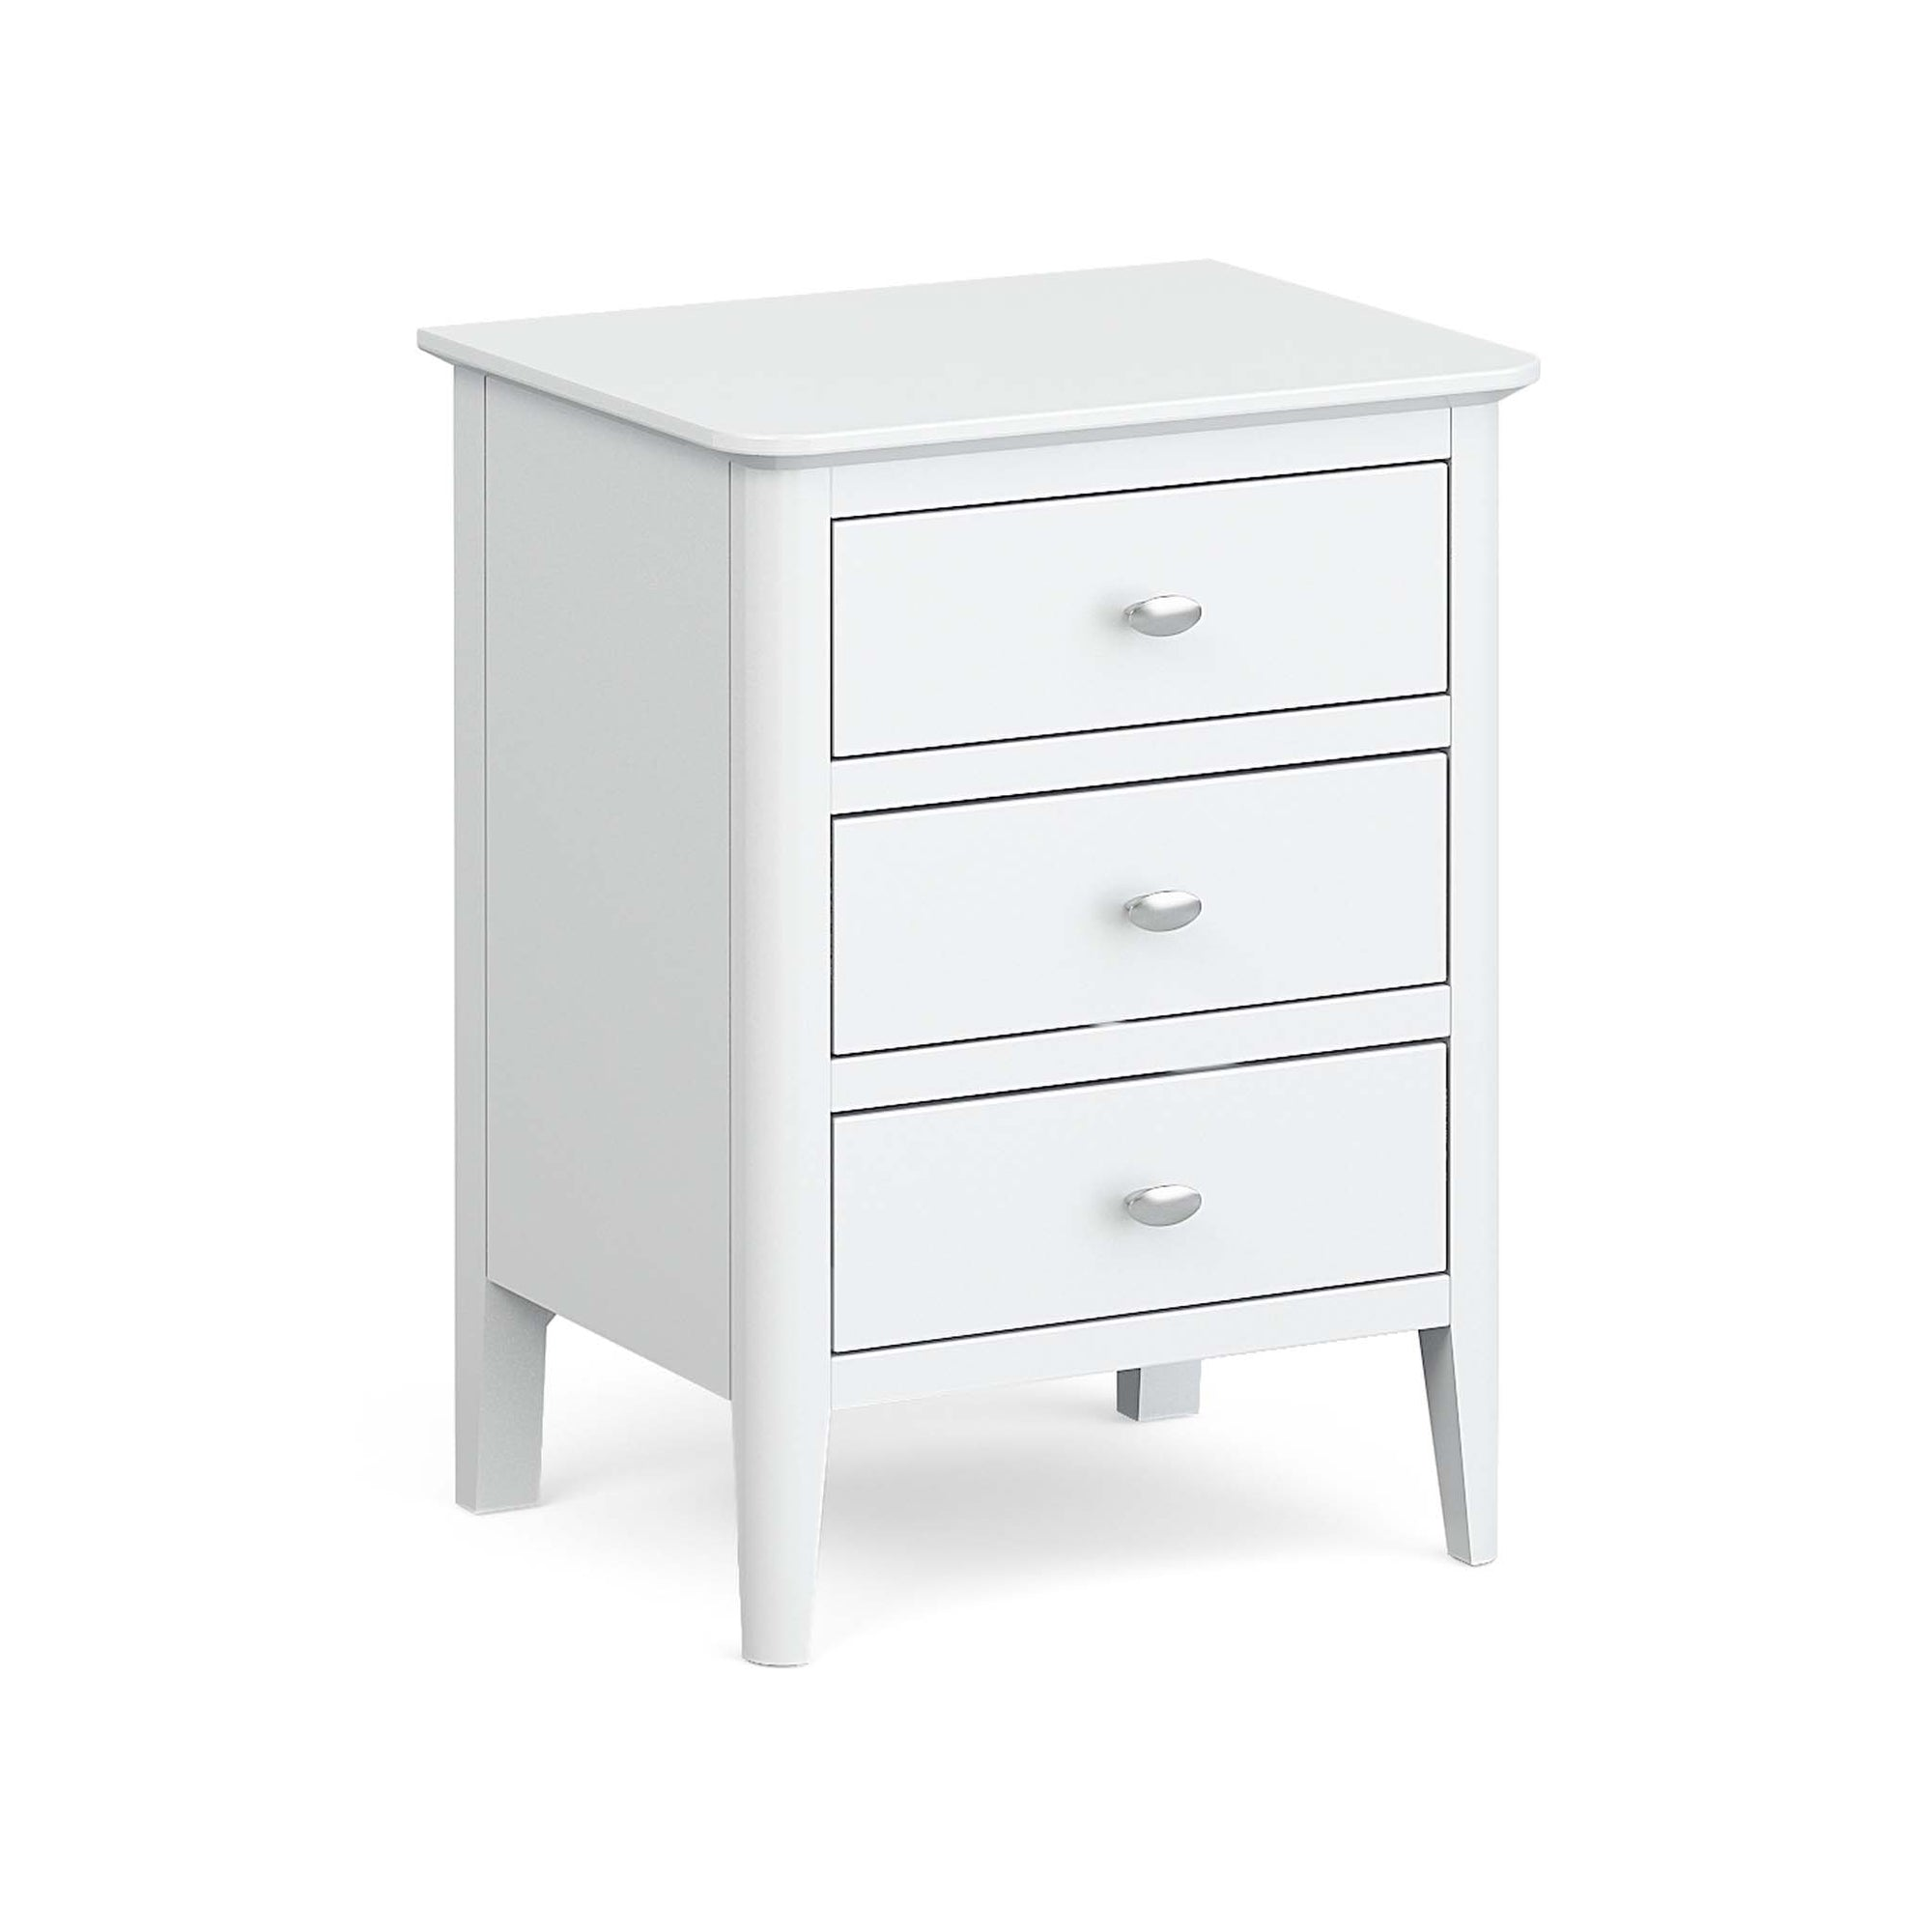 Chester White Bedside Chest of 3 Drawers by Roseland Furniture